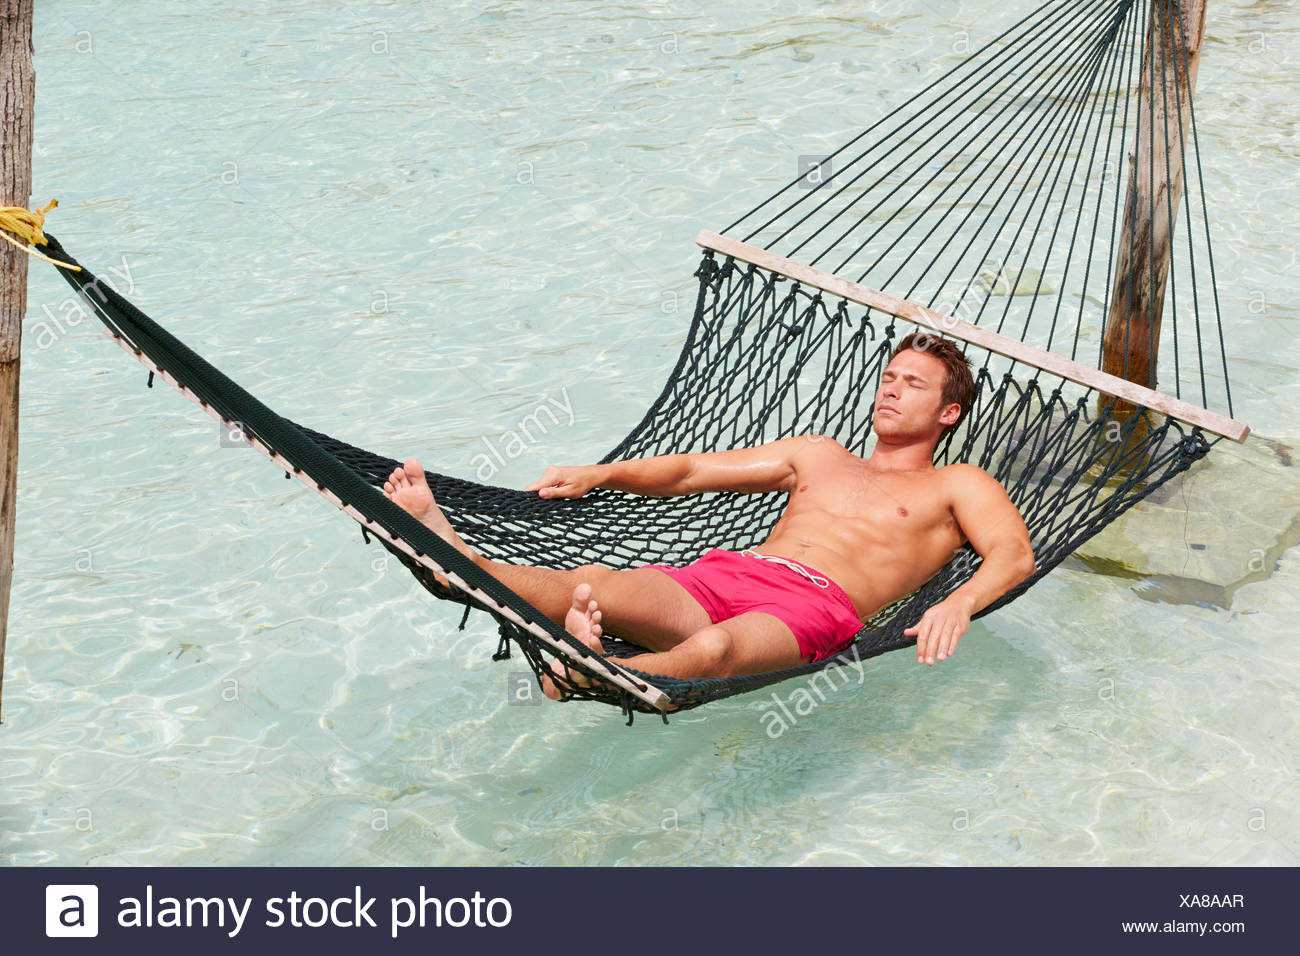 Man Relaxing In Beach Hammock - Stock Image